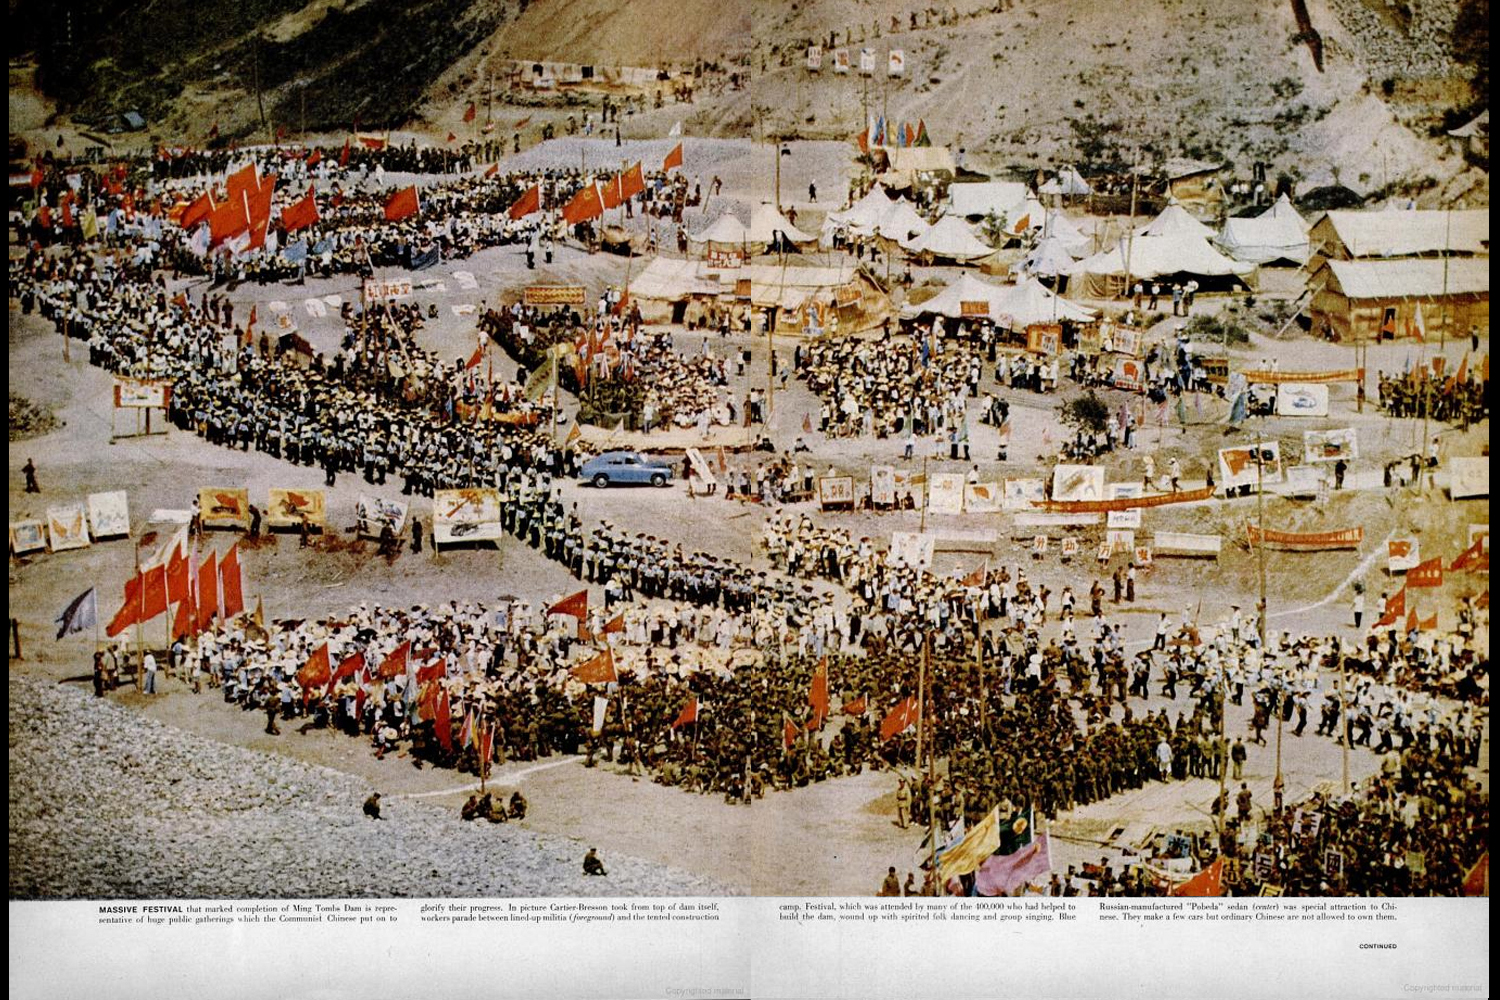 Pages from  Red China Bid for a Future,  featuring photographs by Henri Cartier-Bresson, as the article appeared in the January 5, 1959, issue of LIFE. Massive festival that marked completion of Ming Tombs Dam ... Cartier-Bresson took picture from the top of the dam itself. Blue Russian-made  Pobeda  sedan (center) was special attraction to Chinese. They make a few cars but ordinary Chinese are not allowed to own them.  (NOTE: This gallery is best viewed in  full screen  mode. See button at right.)